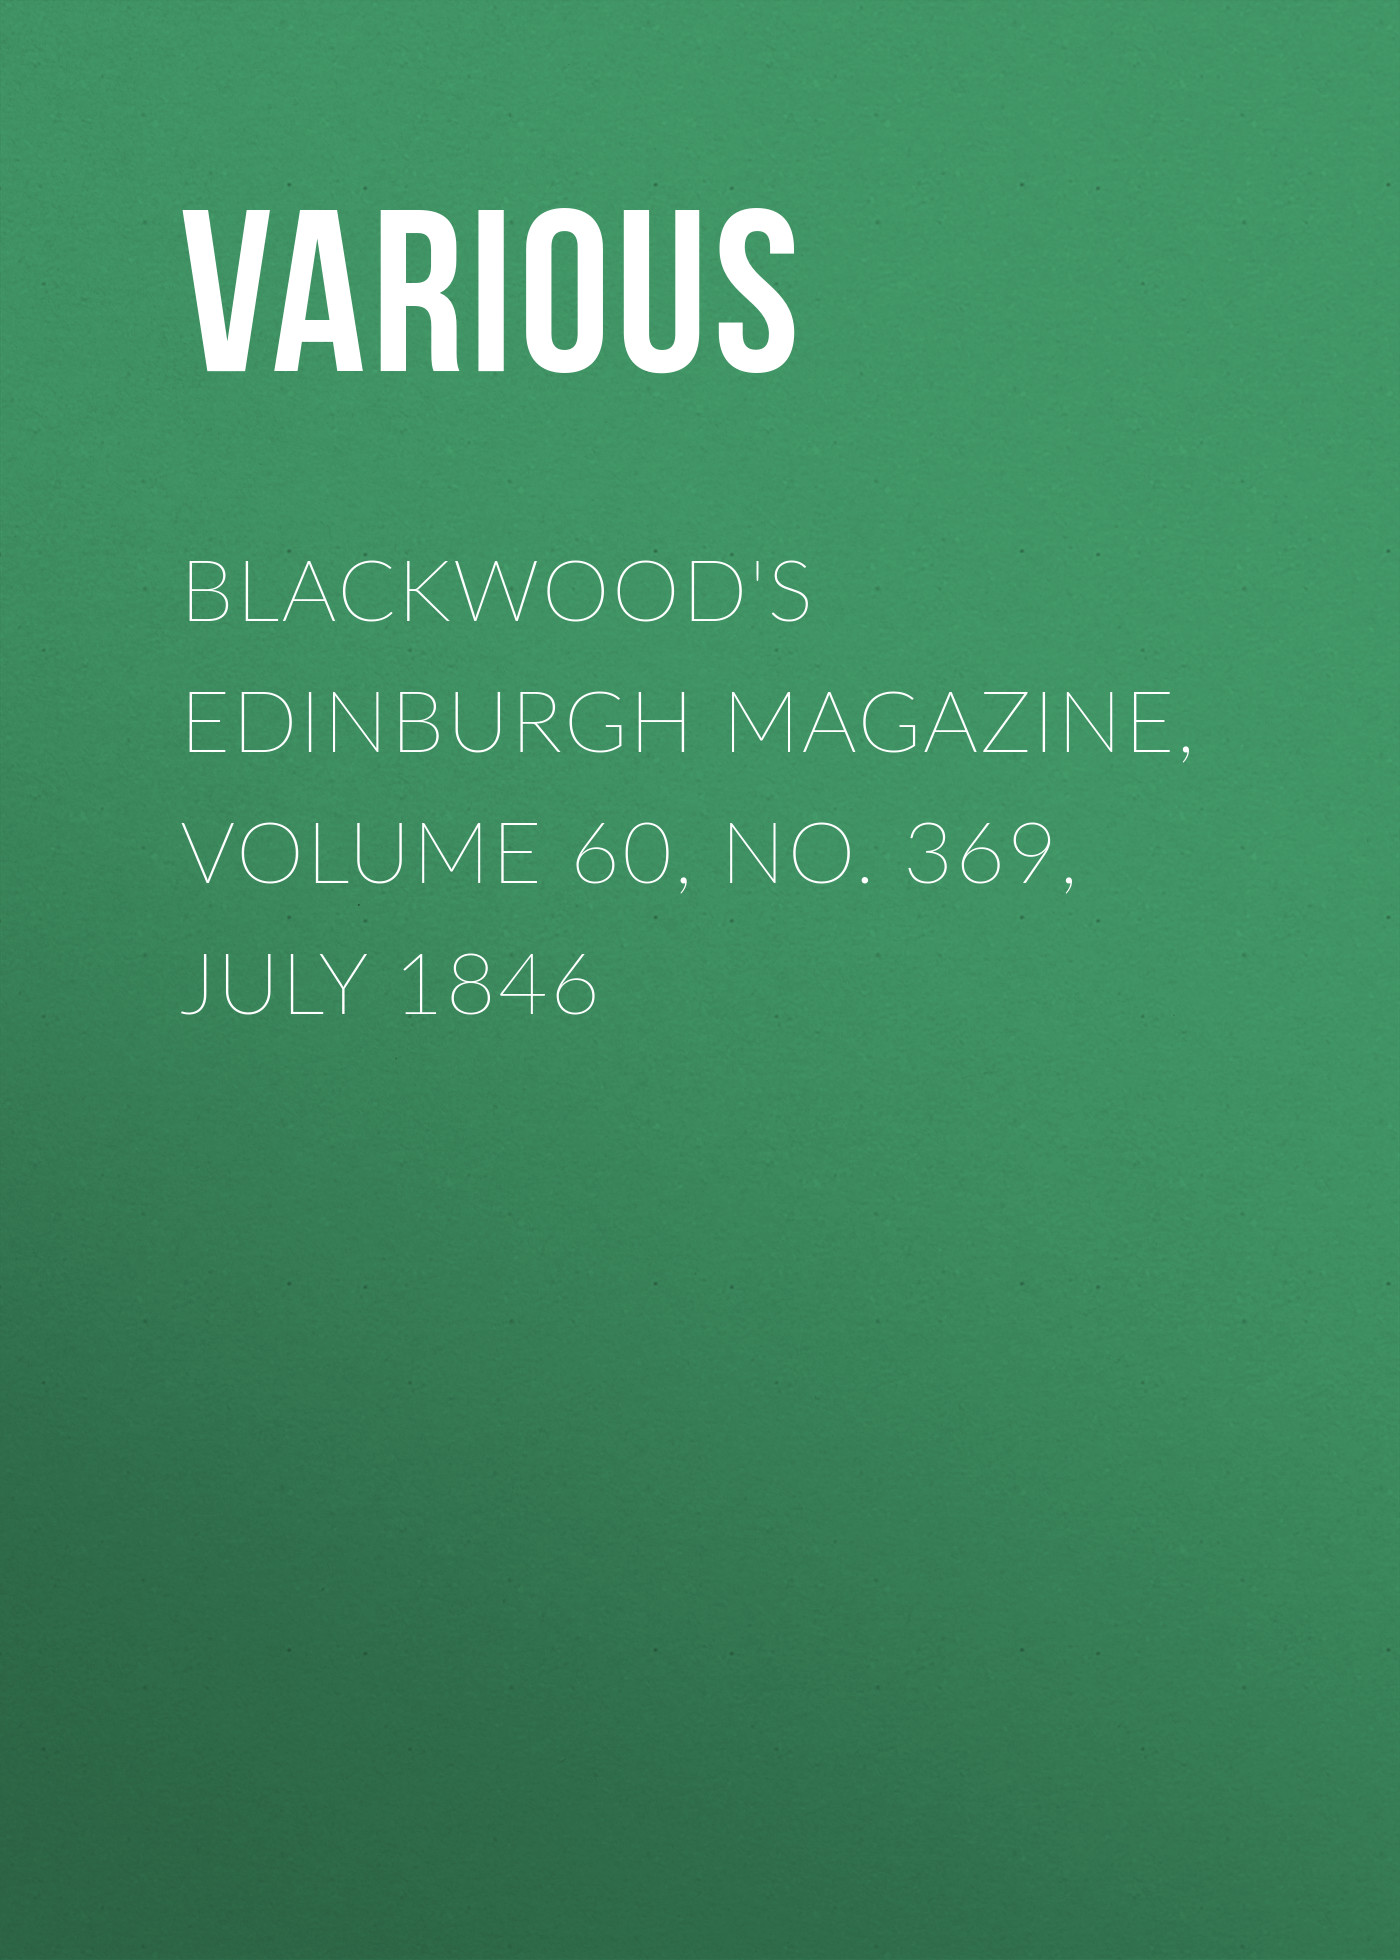 лучшая цена Various Blackwood's Edinburgh Magazine, Volume 60, No. 369, July 1846